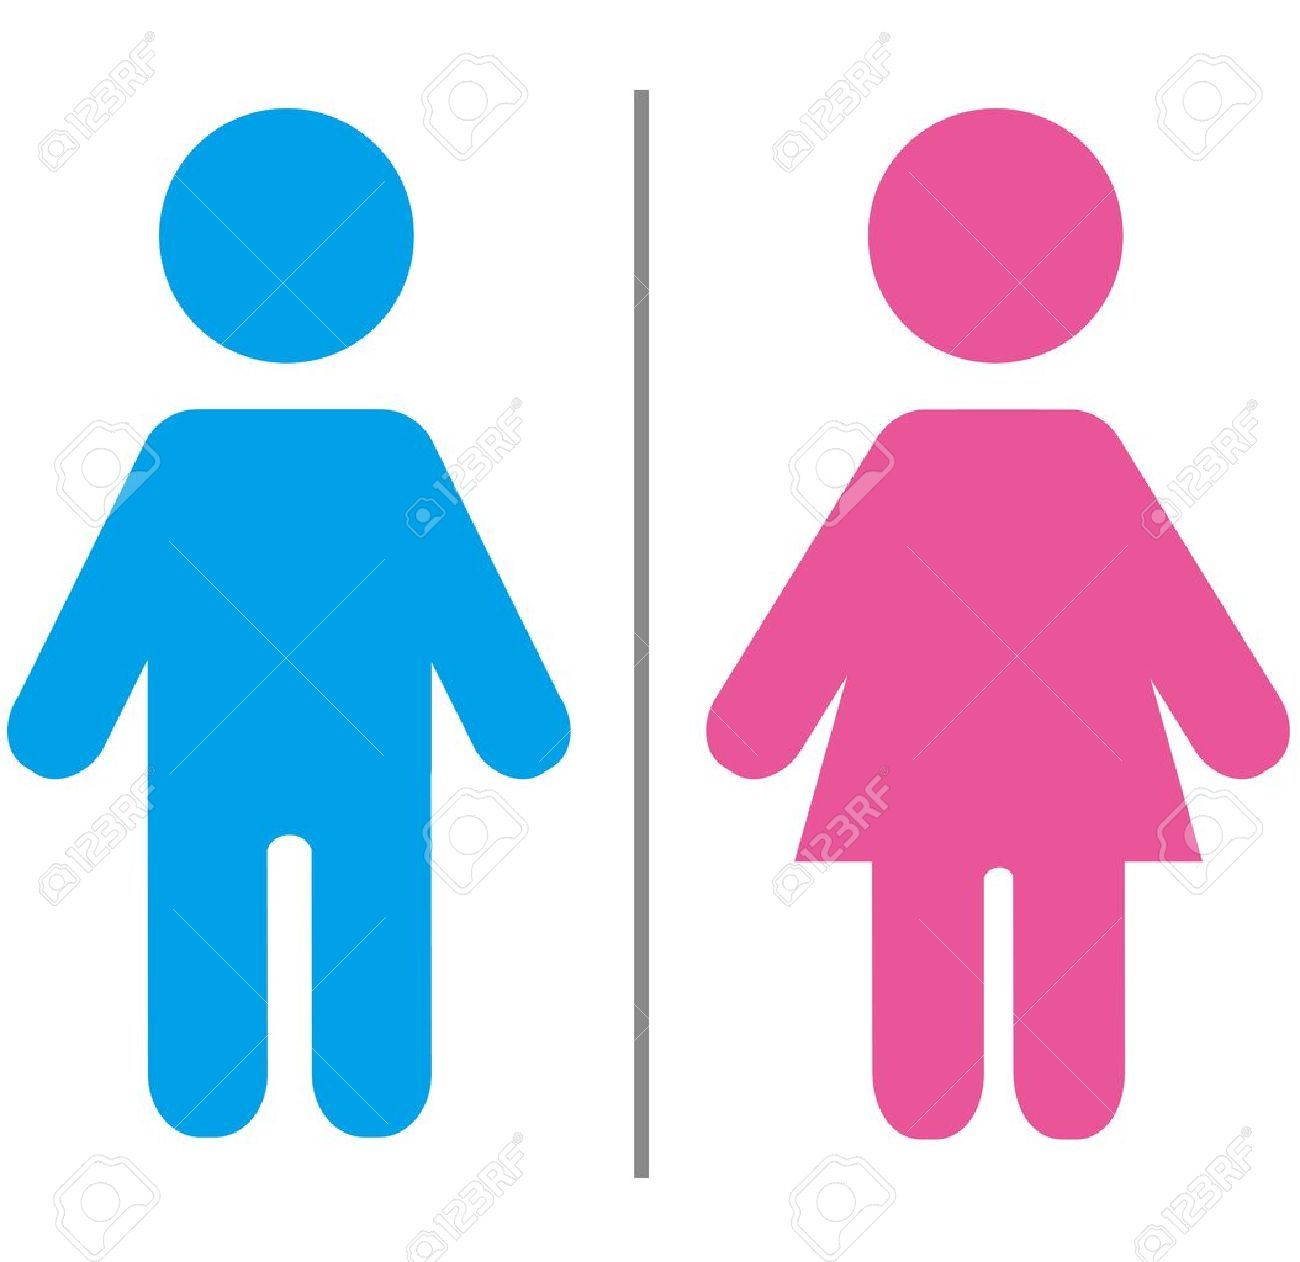 Restroom Sign Cute Male And Female Sign  Download. Female Bathroom Sign Image